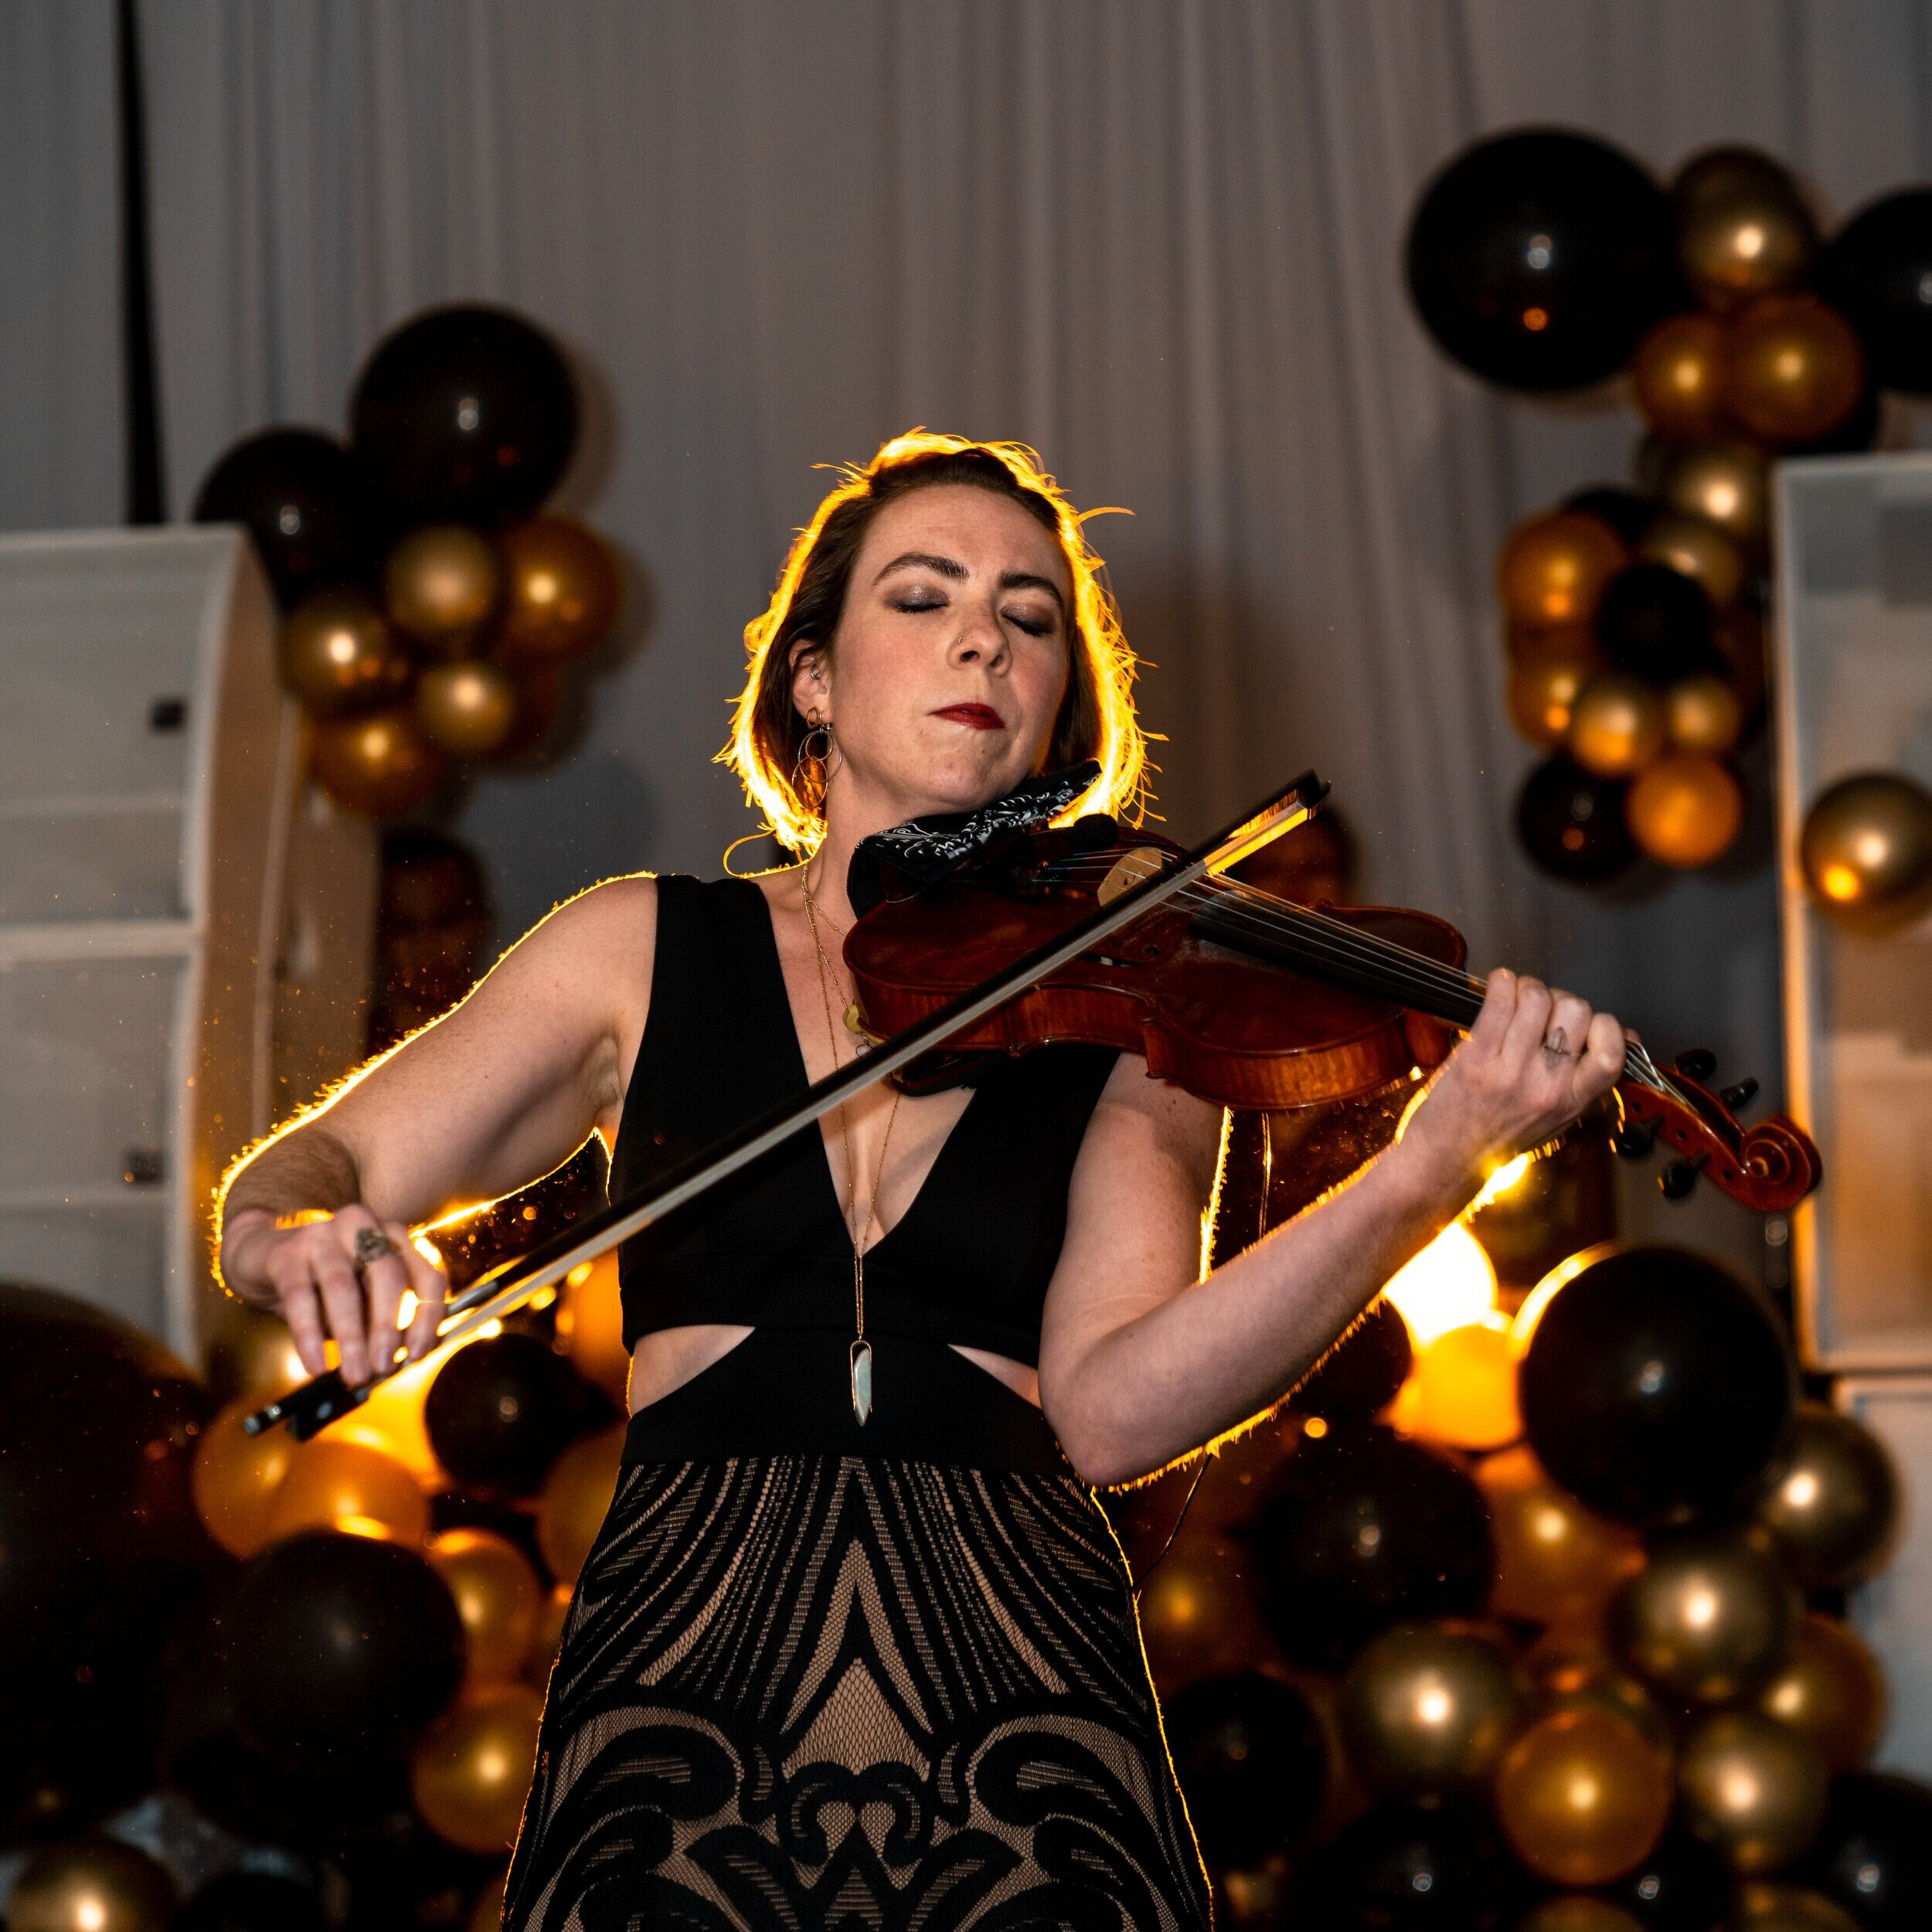 Soloists & Duos - From wedding ceremony soloists to stunning reception performances, Ignight Entertainment can provide the perfect musician for your special event. Soloists and duos from every category are available; violinist, vocalist, saxophonist, trumpet, drummer and more. Pair a soloist with a DJ for an exciting DJ musician fusion!